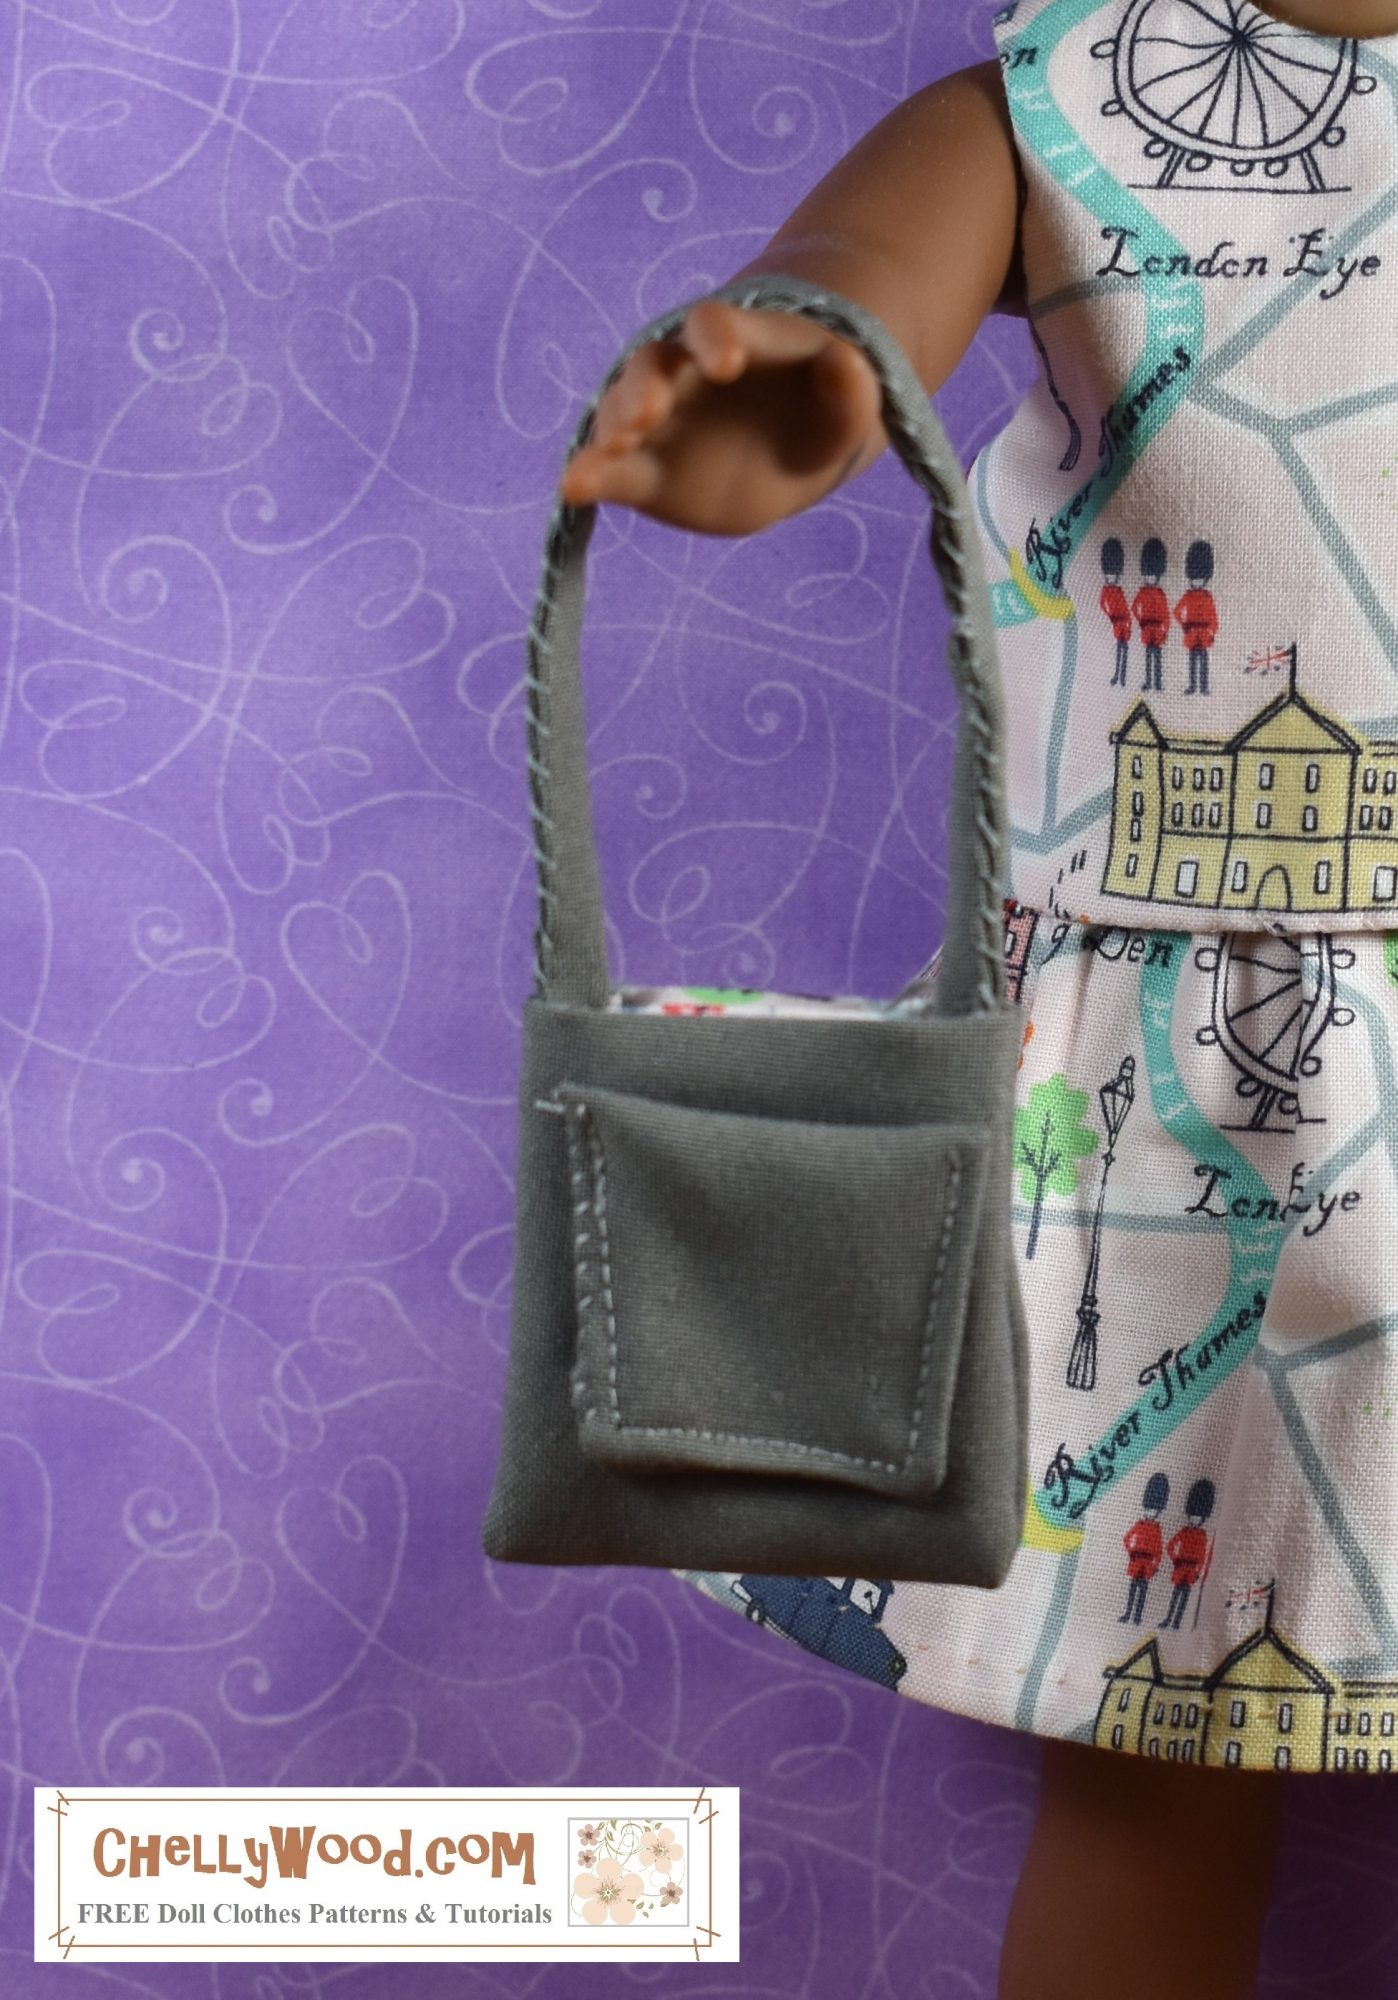 """The image shows a partial photo of a doll in the 13-inch, 14-inch, 15-inch, 16-inch, 17-inch, or possibly 18-inch doll range holding a handmade purse with a pocket. The watermark says """"ChellyWood.com: free doll clothes patterns and tutorials."""" If you click on the link below the photo, it will take you to a page where you'll find a tutorial video and free printable PDF pattern for making a purse like this one with a side pocket and lining, to fit dolls in this size range."""